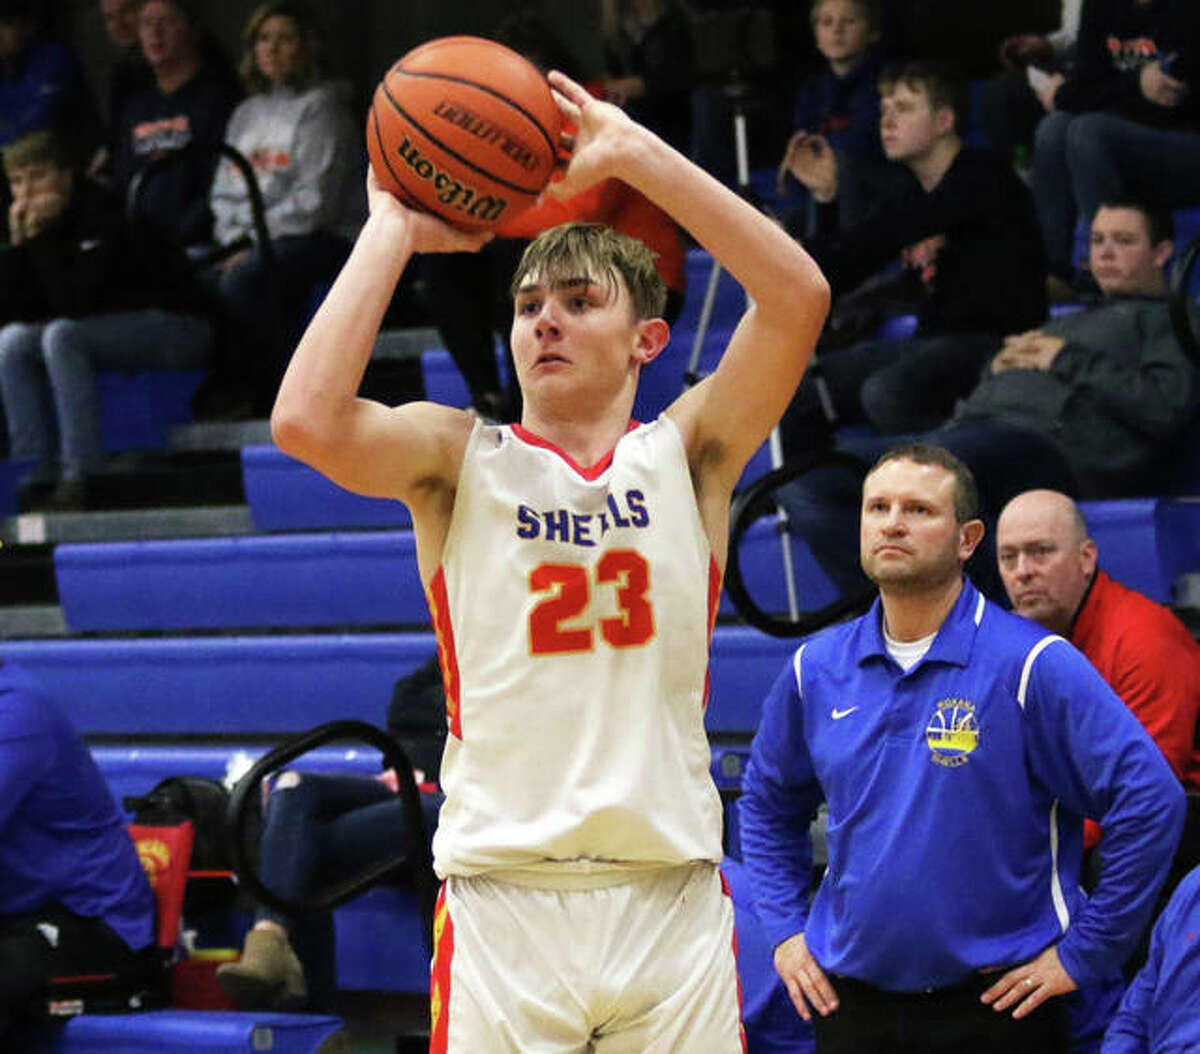 Roxana's Gavin Huffman scored 21 points and helped his team to a 51-42 victory over Highland Tuesday night. With the victory, the Shells are 2-2 on the season.